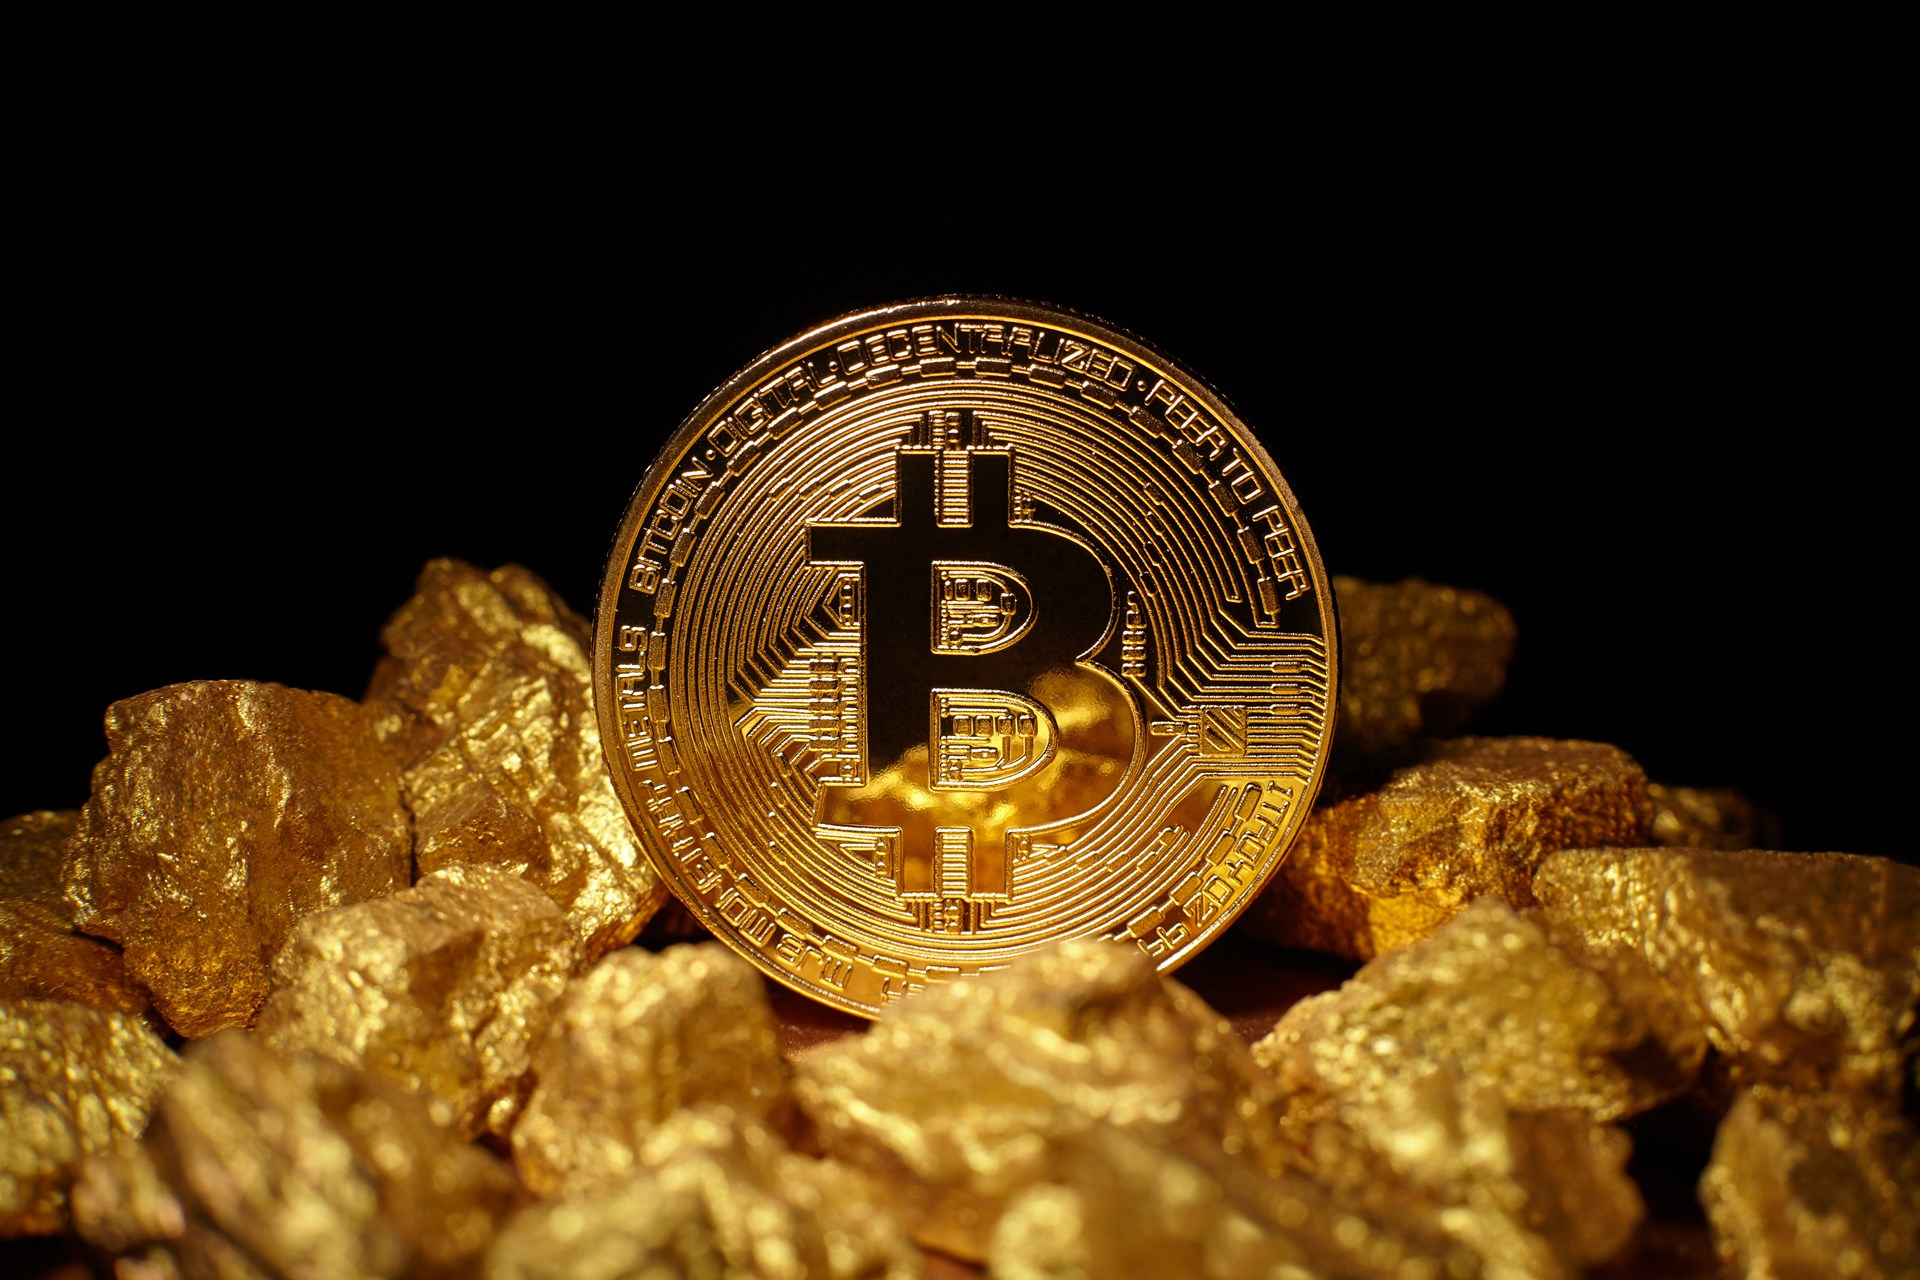 Can gold and Bitcoin coexist? Goldman Sachs says yes